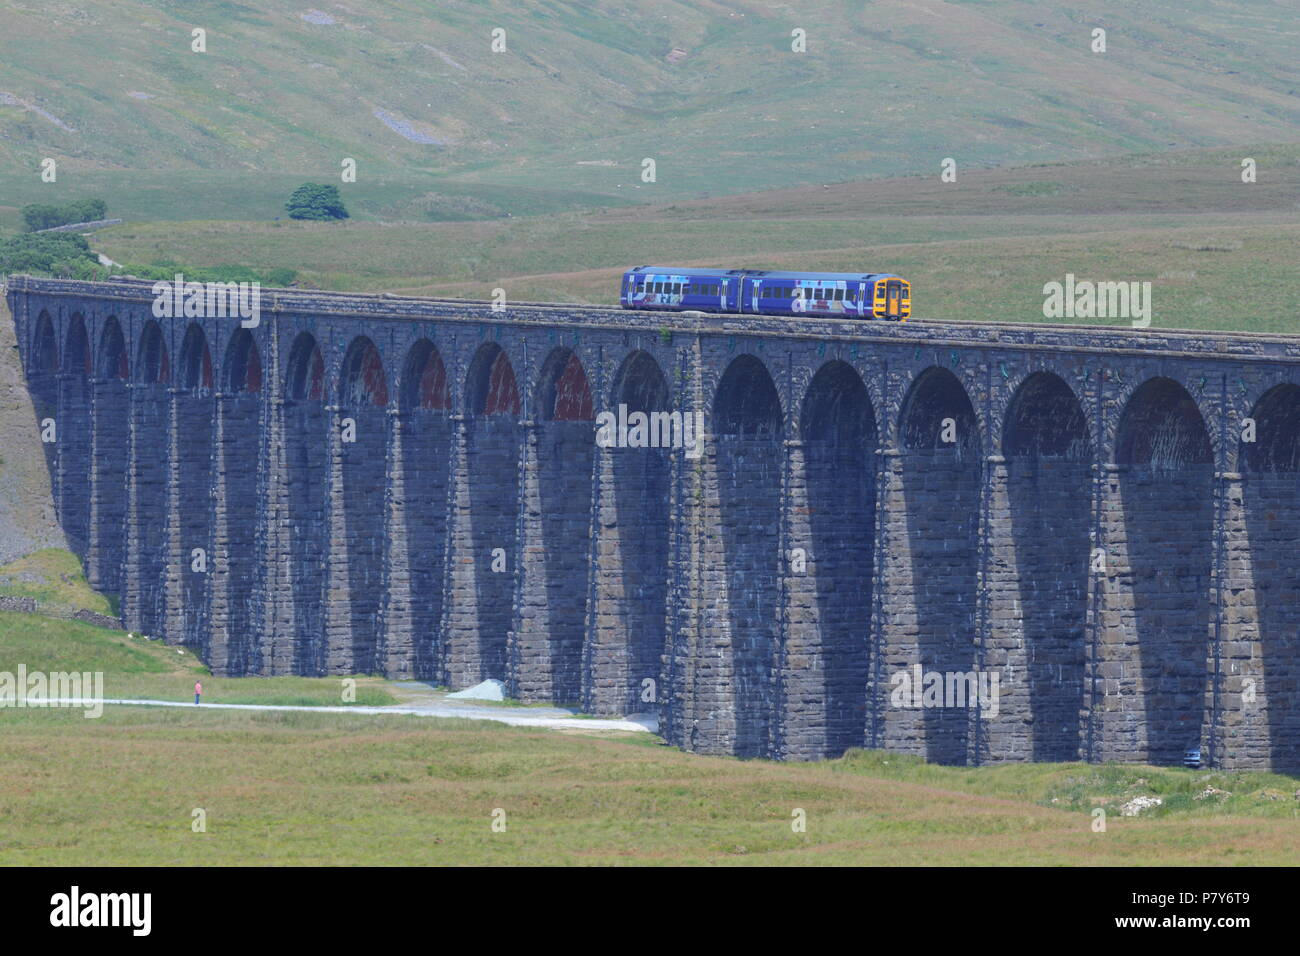 A Northern Rail train crosses over the impressive Ribblehead Viaduct built by the victorians back in 1975 - Stock Image